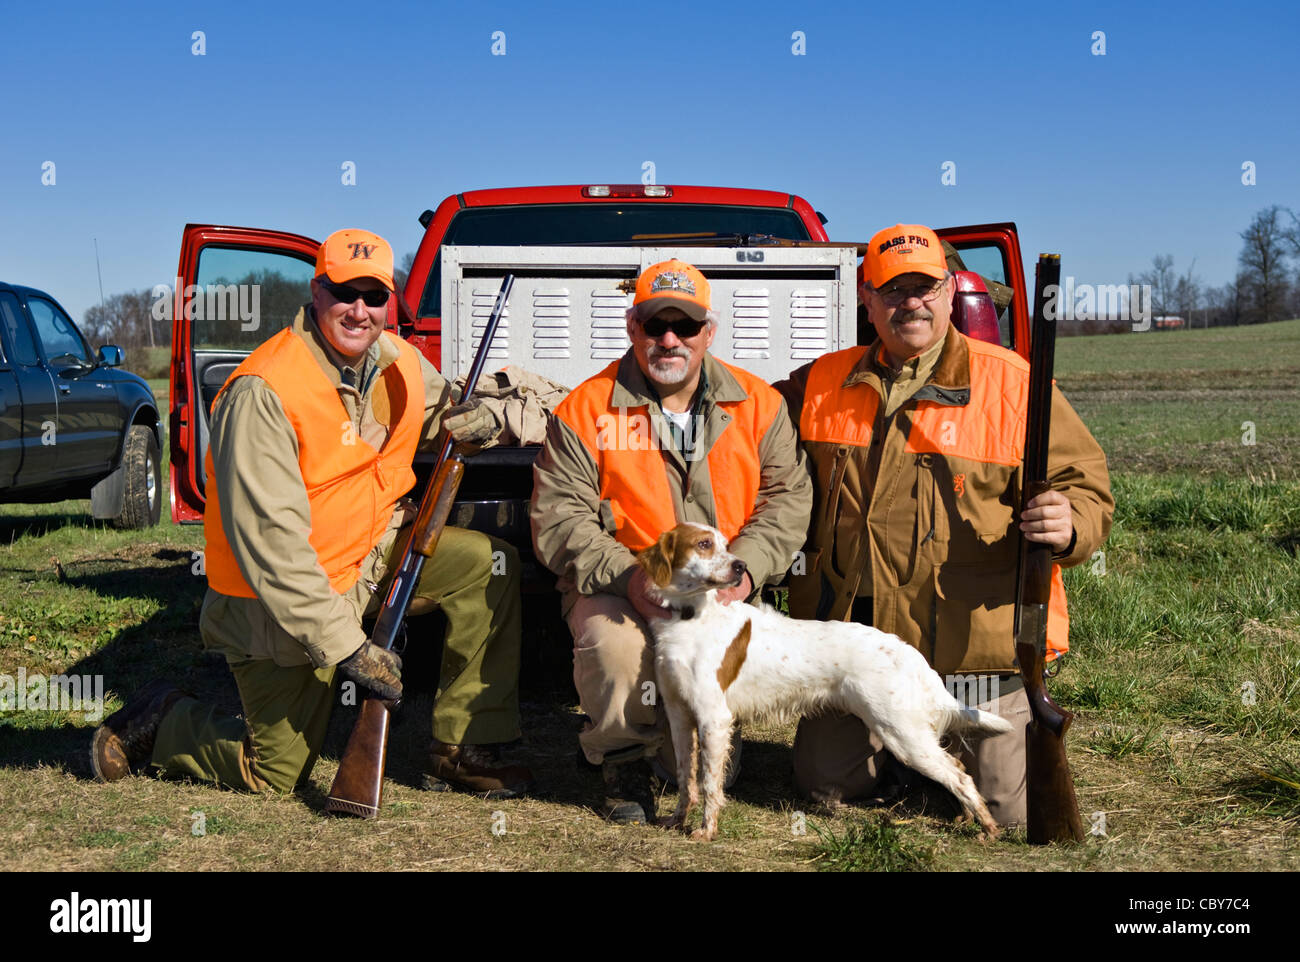 Three Upland Bird Hunters Posing Behind Truck with Shotguns, Quail and English Setter - Stock Image